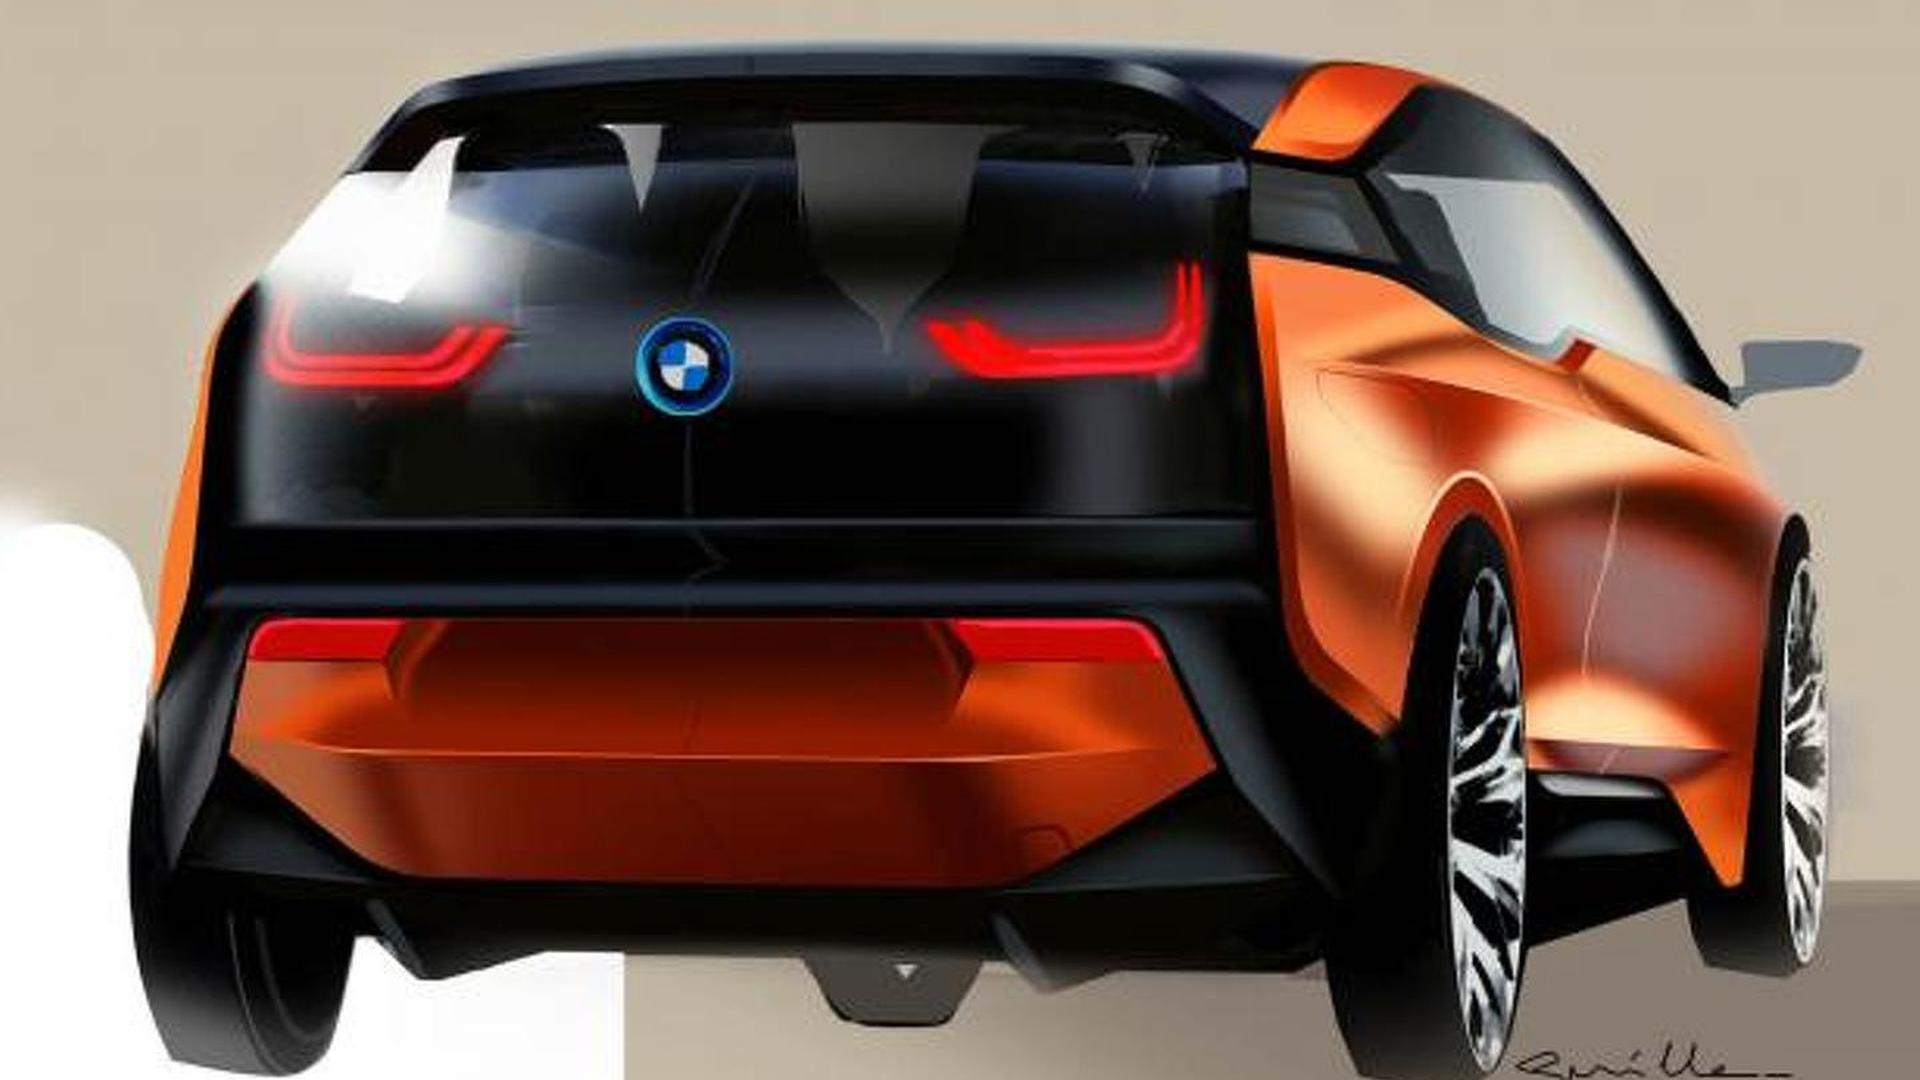 BMW i3 Coupe Concept video released